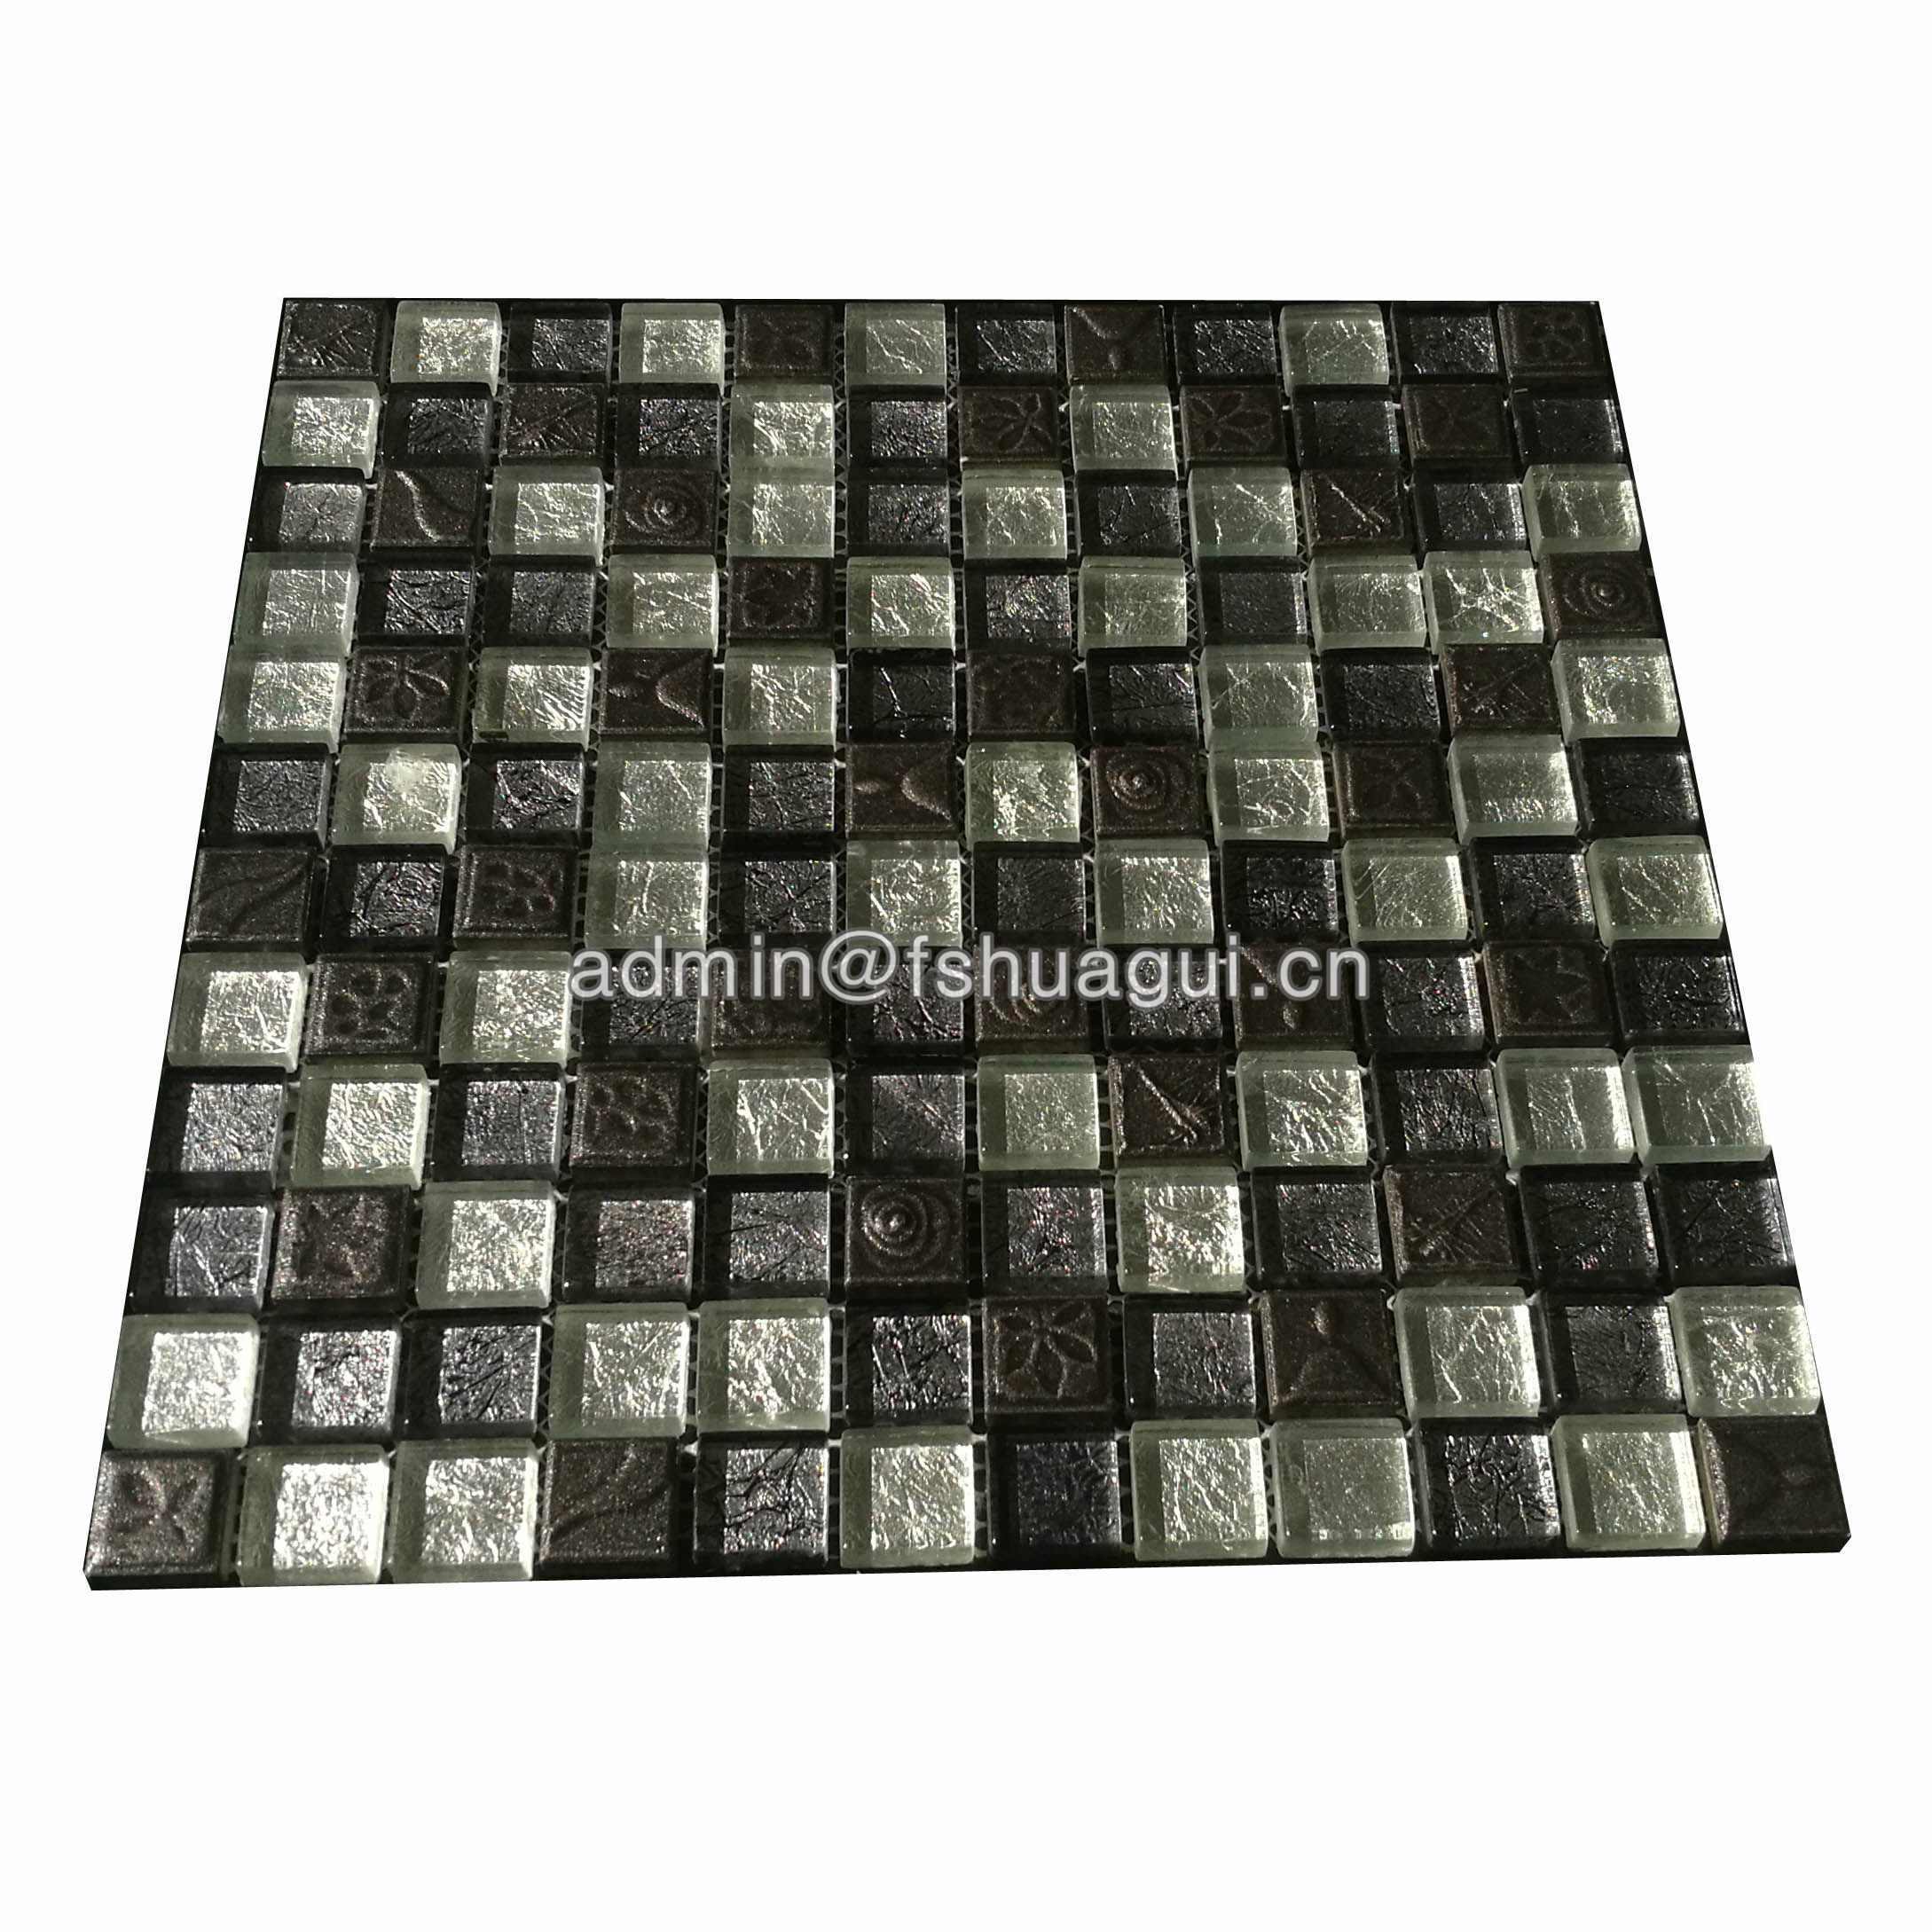 Huagui Luxury Black Resin Mixed Foil Glass Crystal Mosaic Kitchen Bathroom Tile GLASS MOSAIC TILE image115